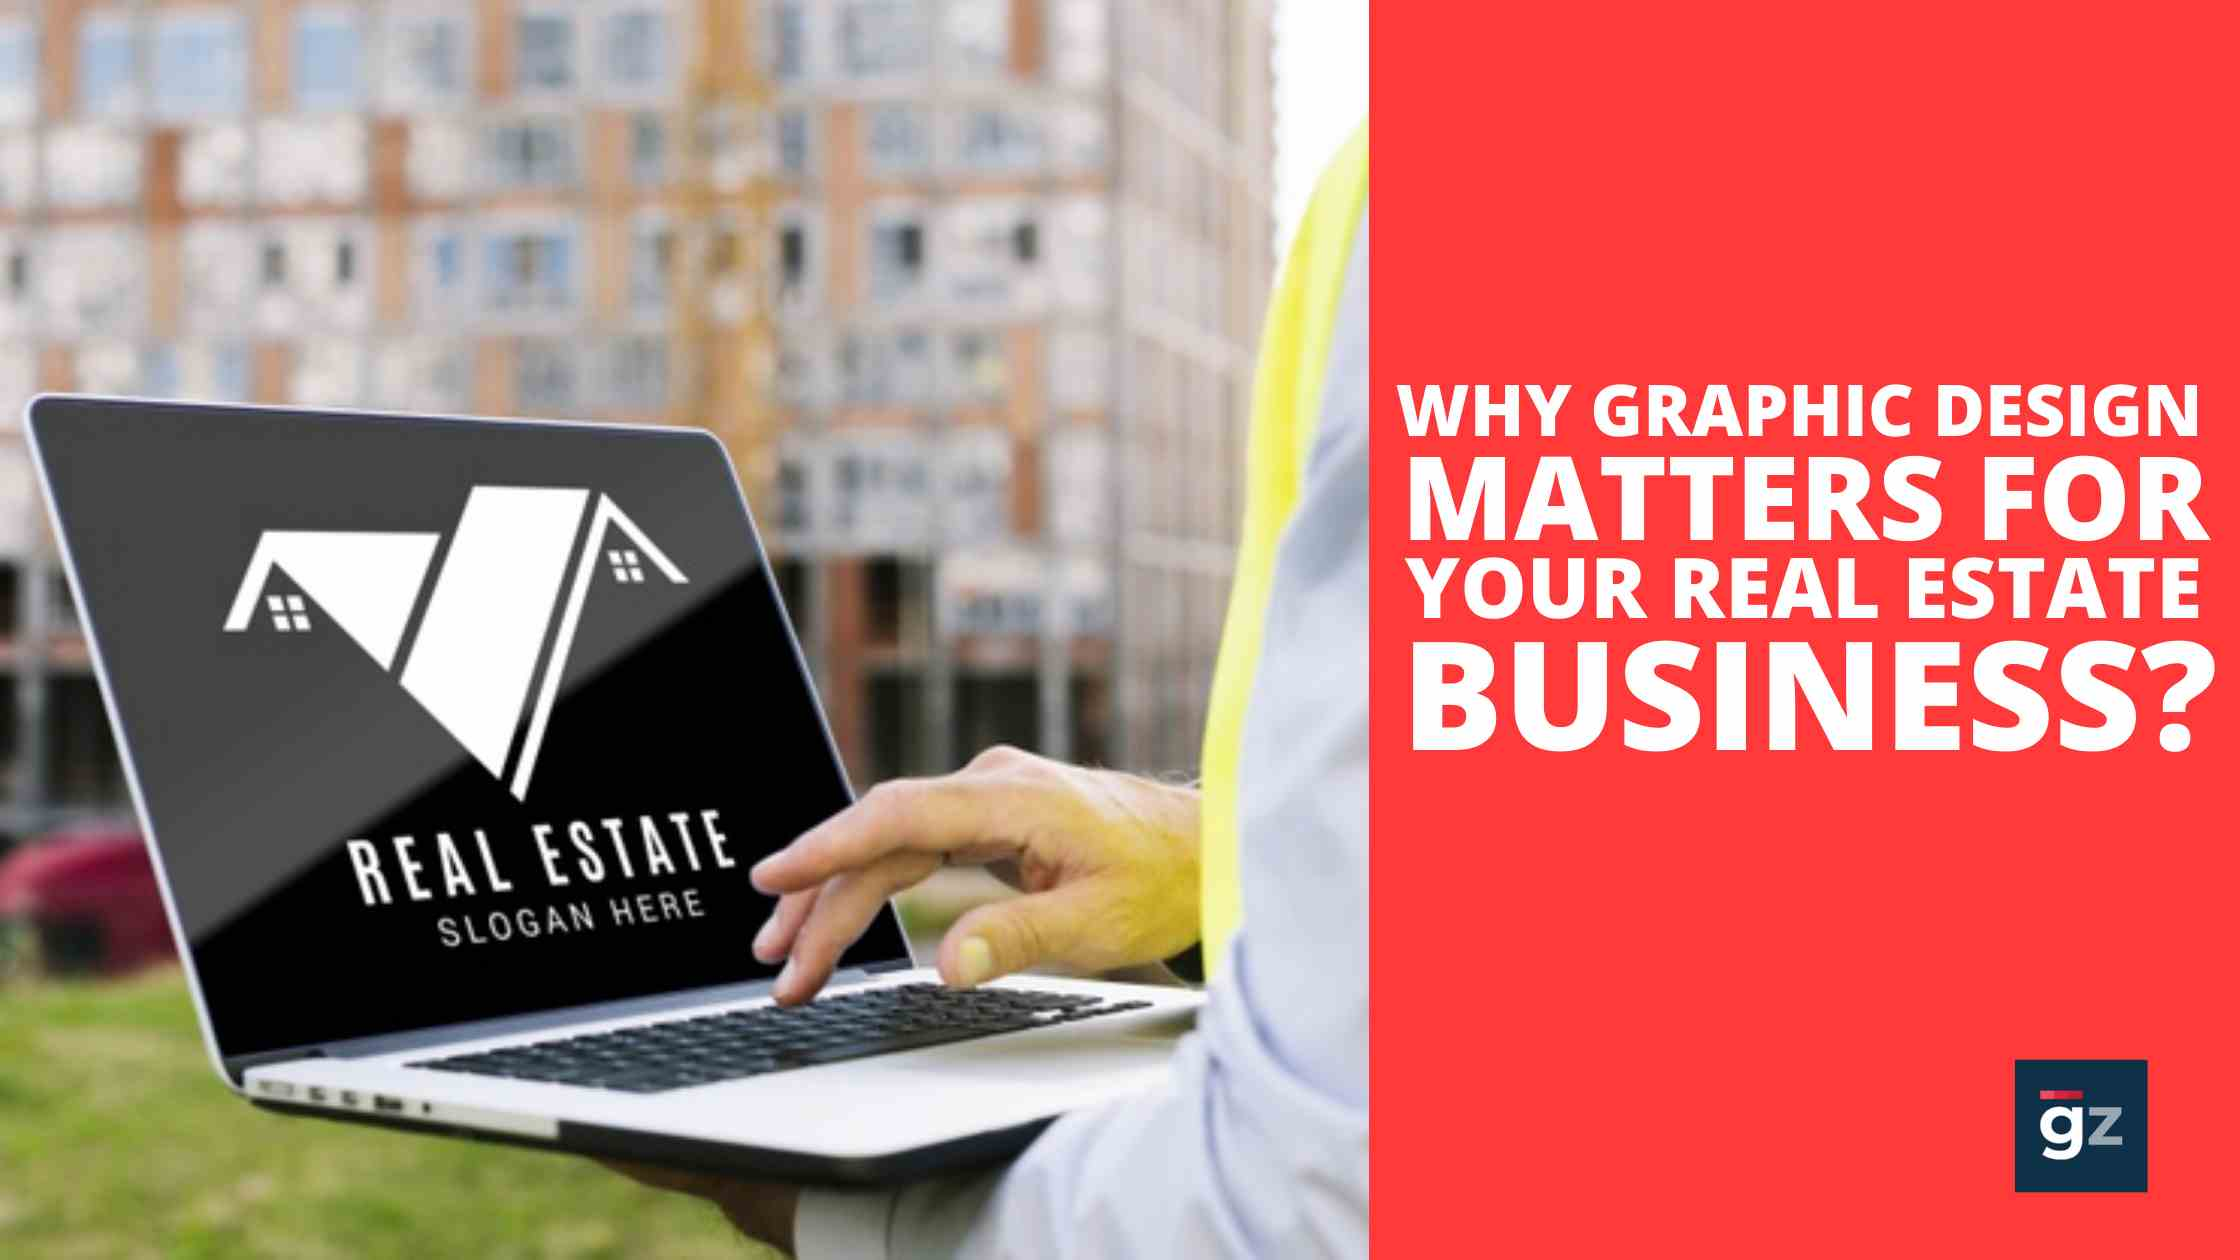 Why Graphic Design Matters for Your Real Estate Business?